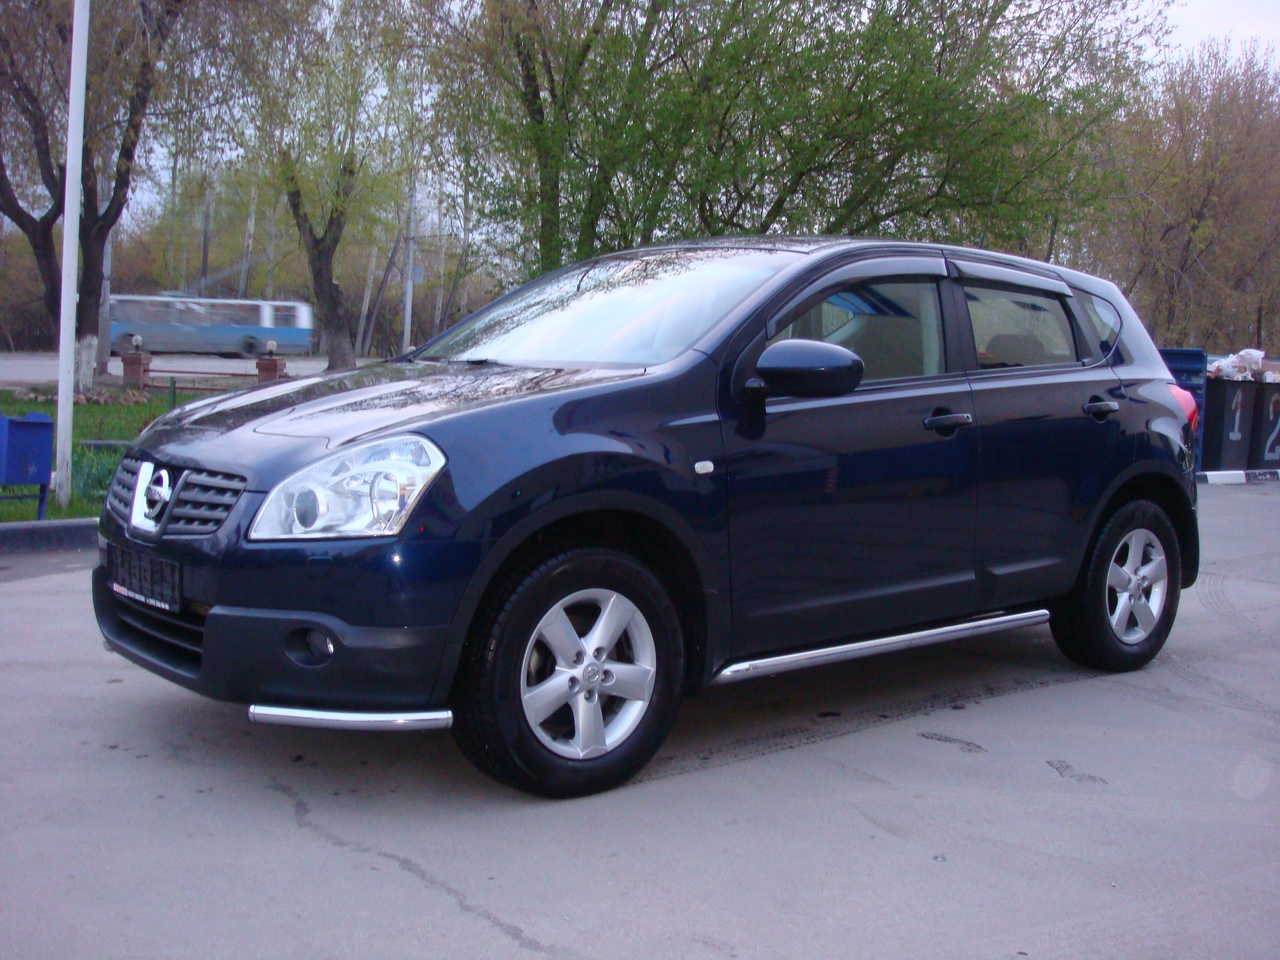 2008 nissan qashqai photos 2 0 gasoline automatic for sale. Black Bedroom Furniture Sets. Home Design Ideas